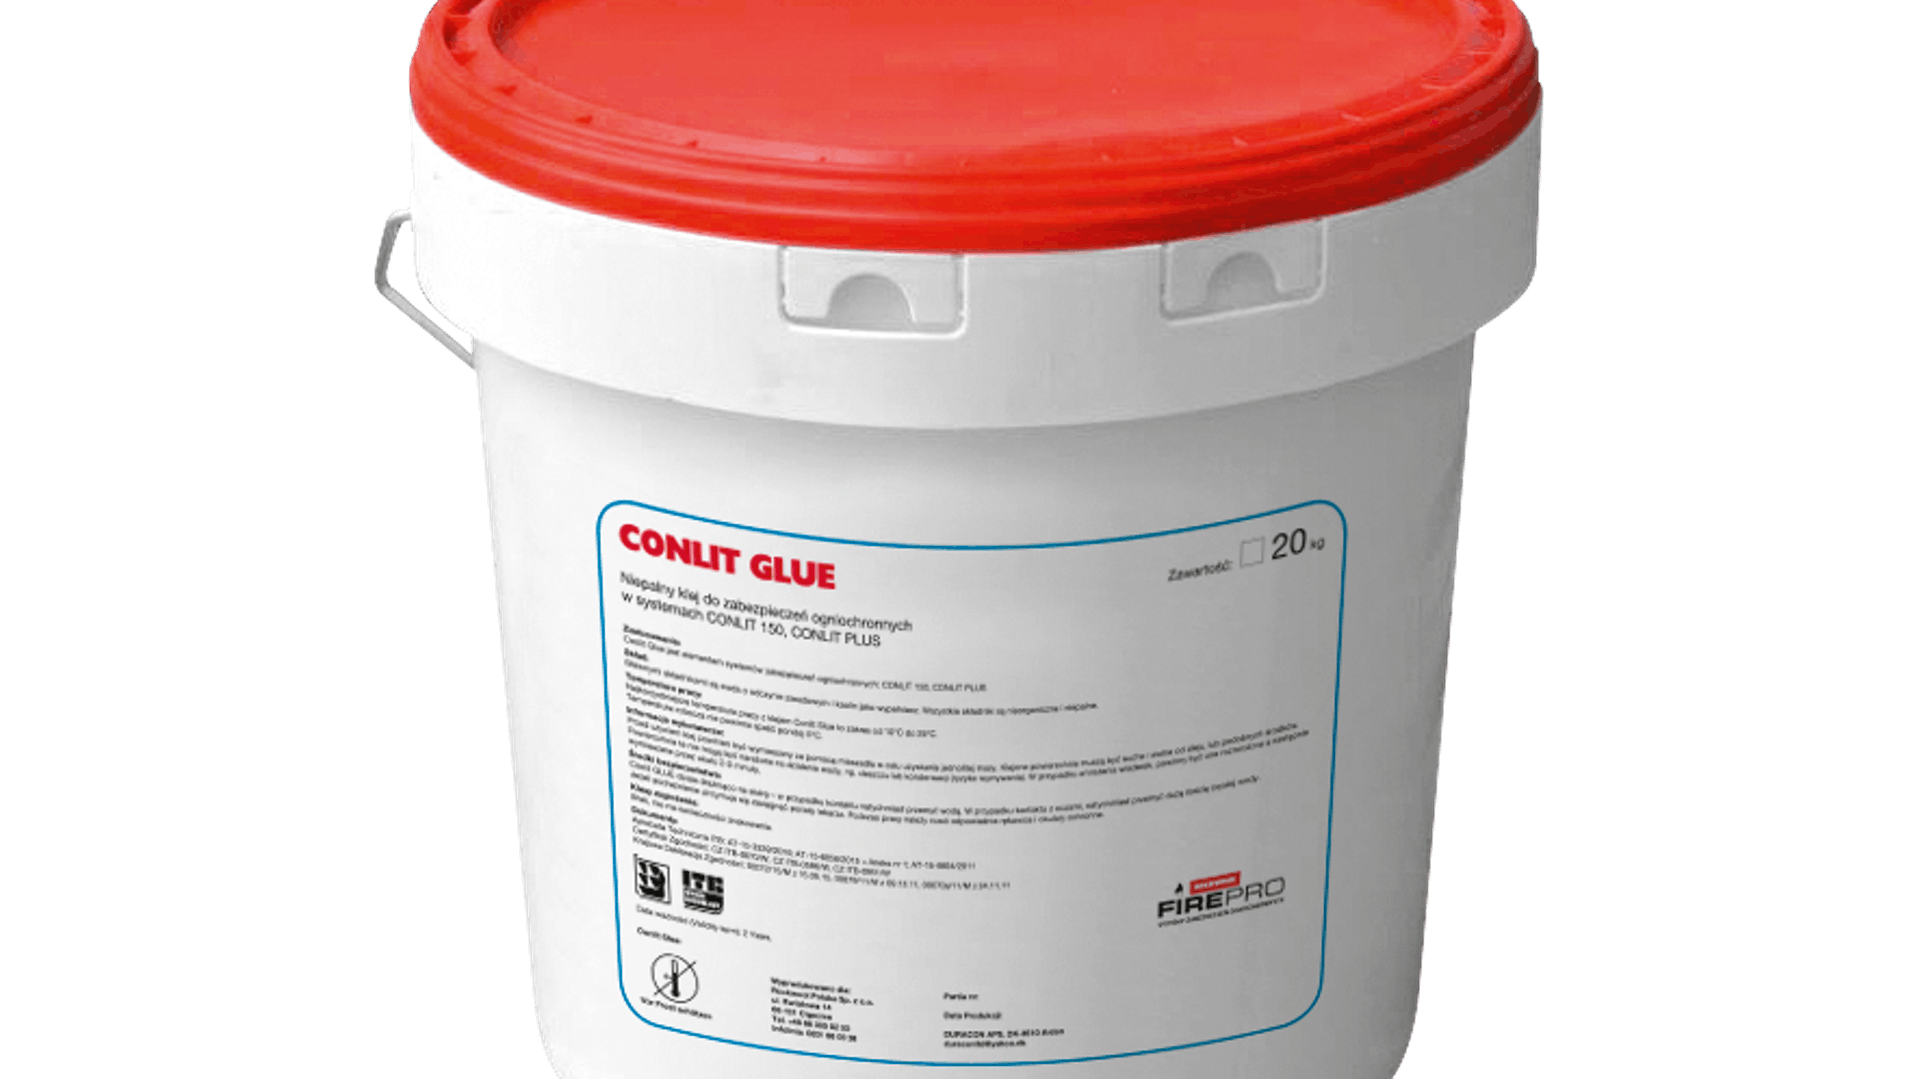 CONLIT GLUE, sealing glue, CONLIT PLUS System and CONLIT 150 System component, fire protective insulation